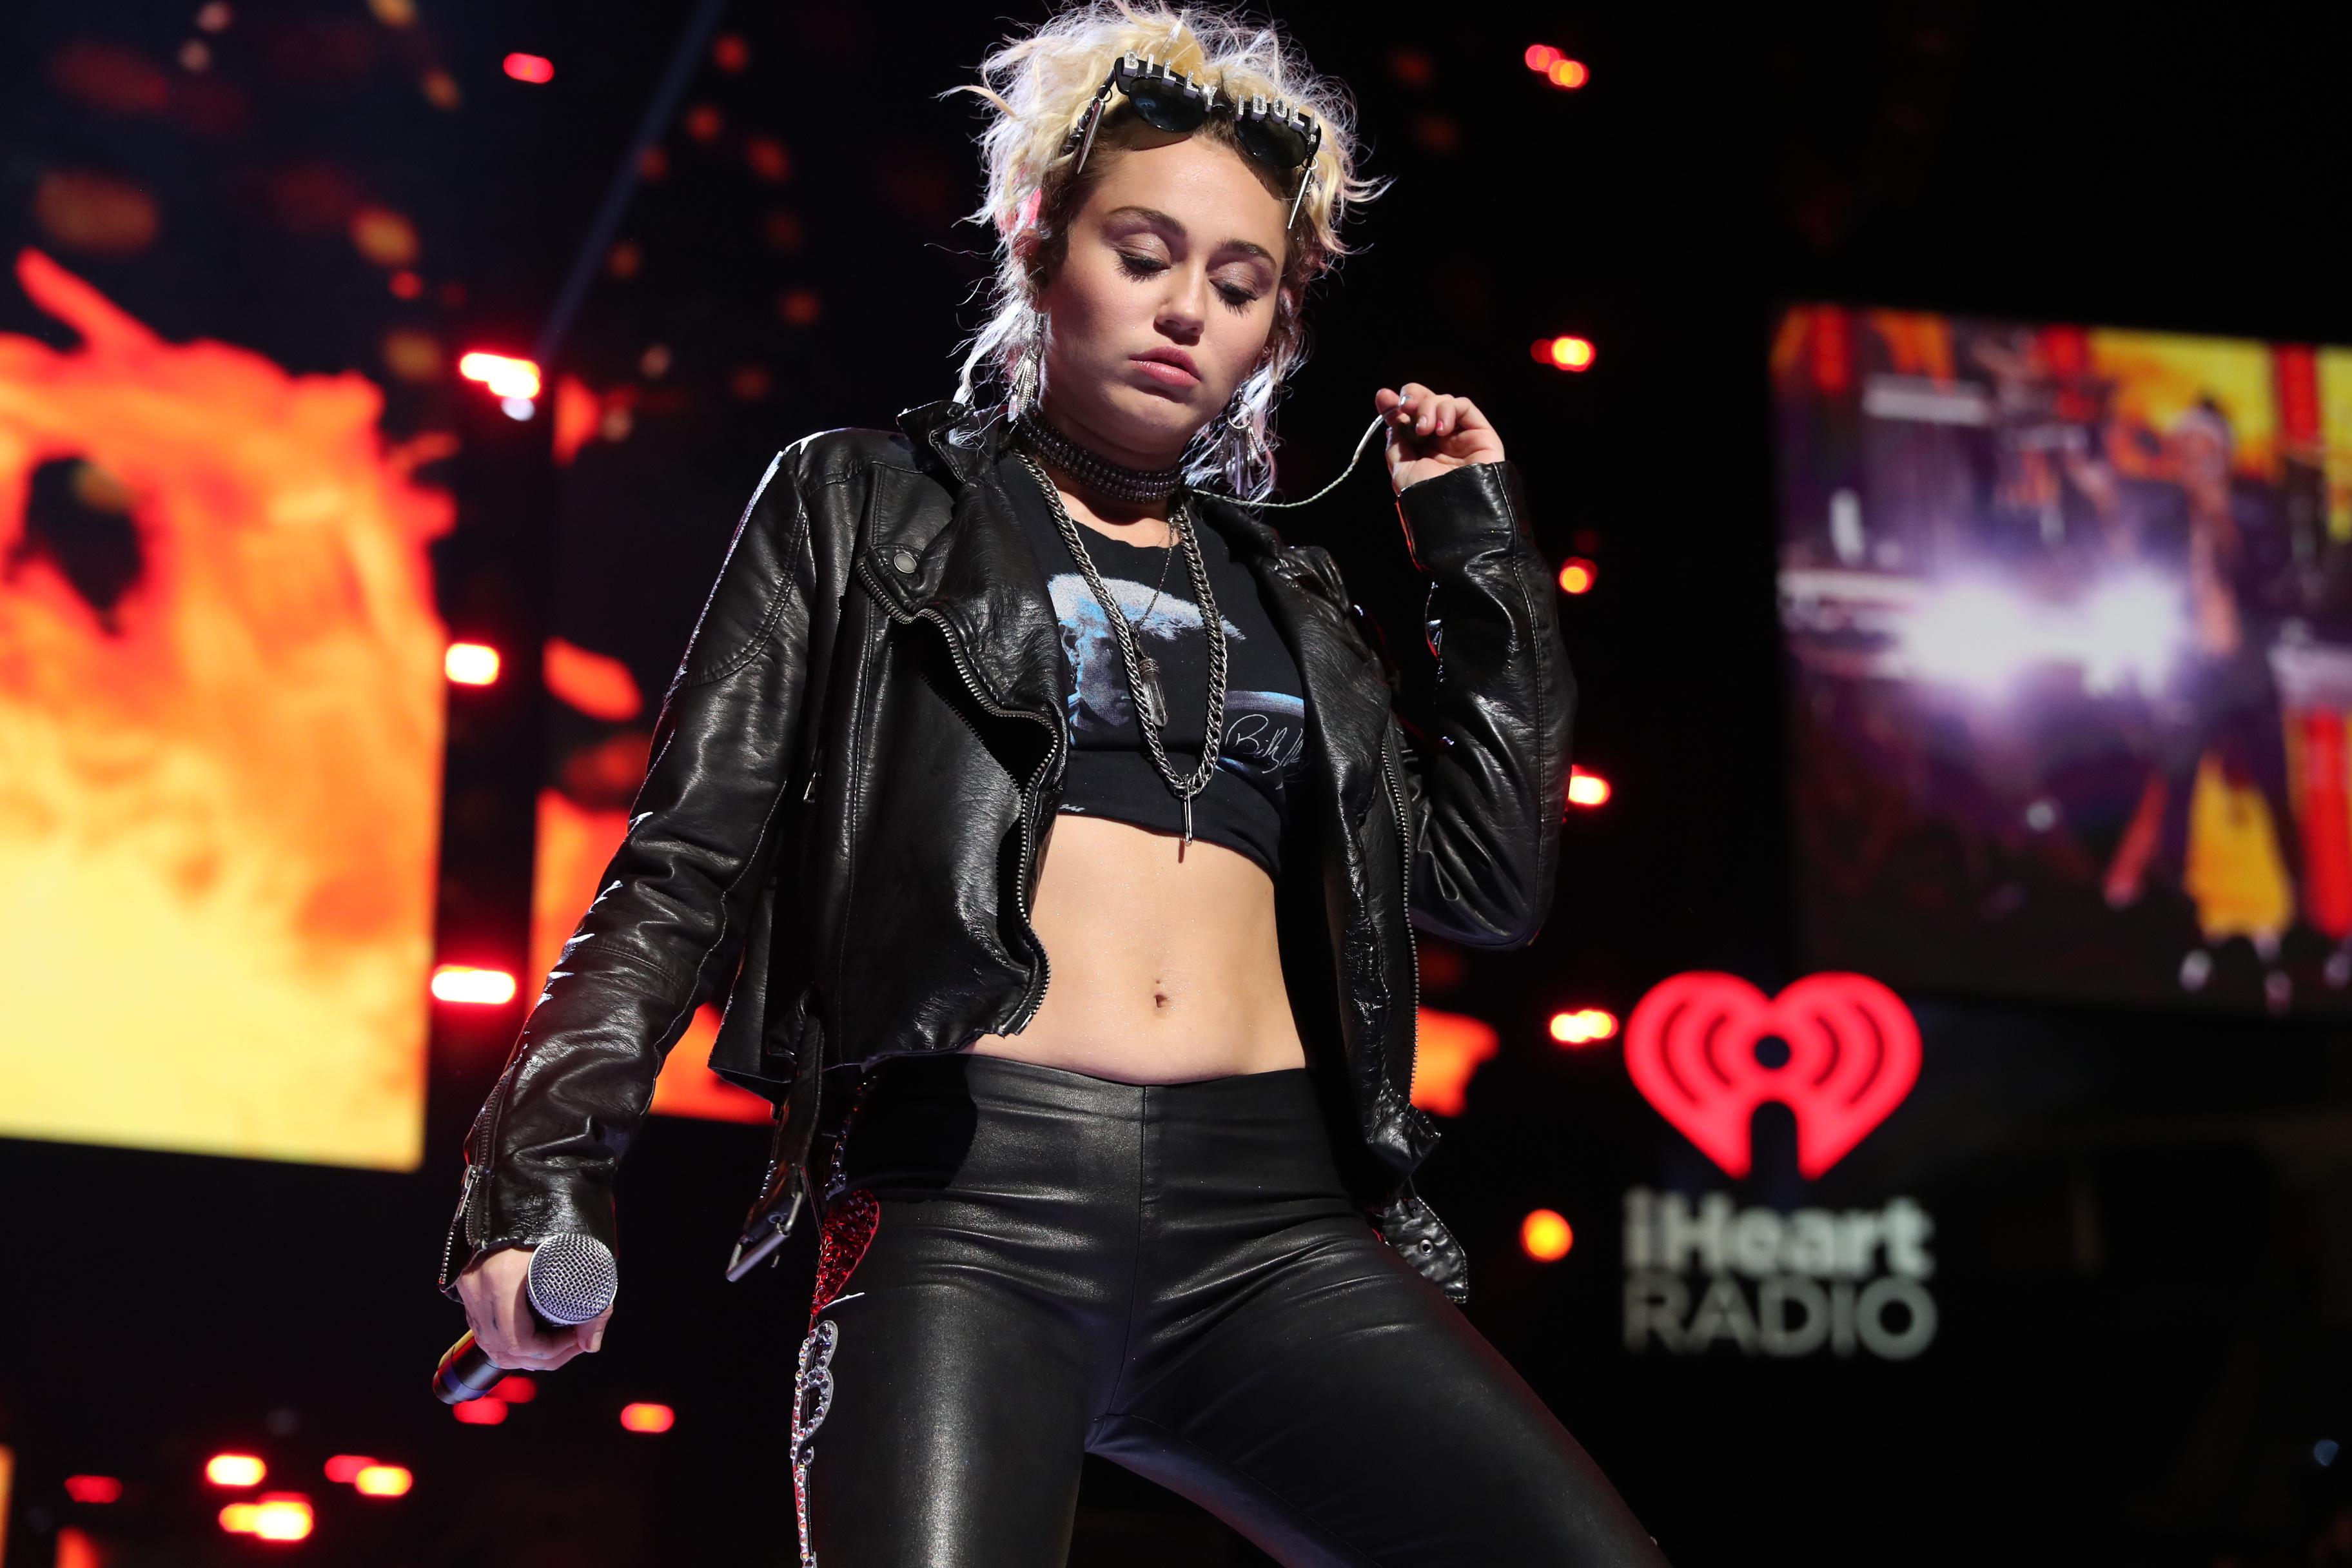 Miley Cyrus just opened up about coming out as pansexual, and we've never adored her more